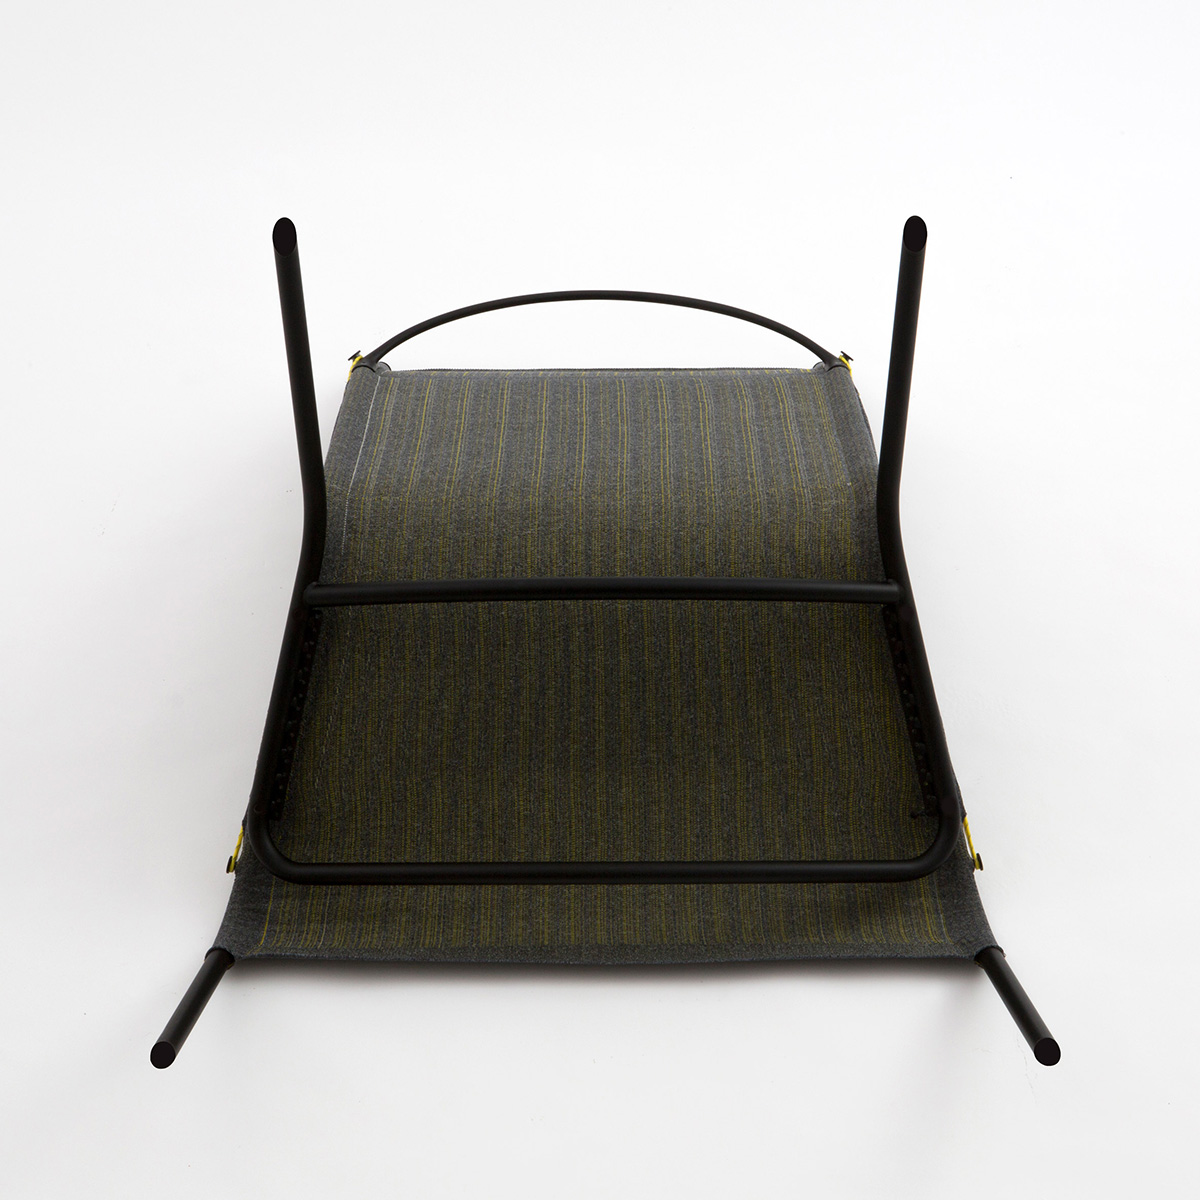 05-tent-chair-layer-design